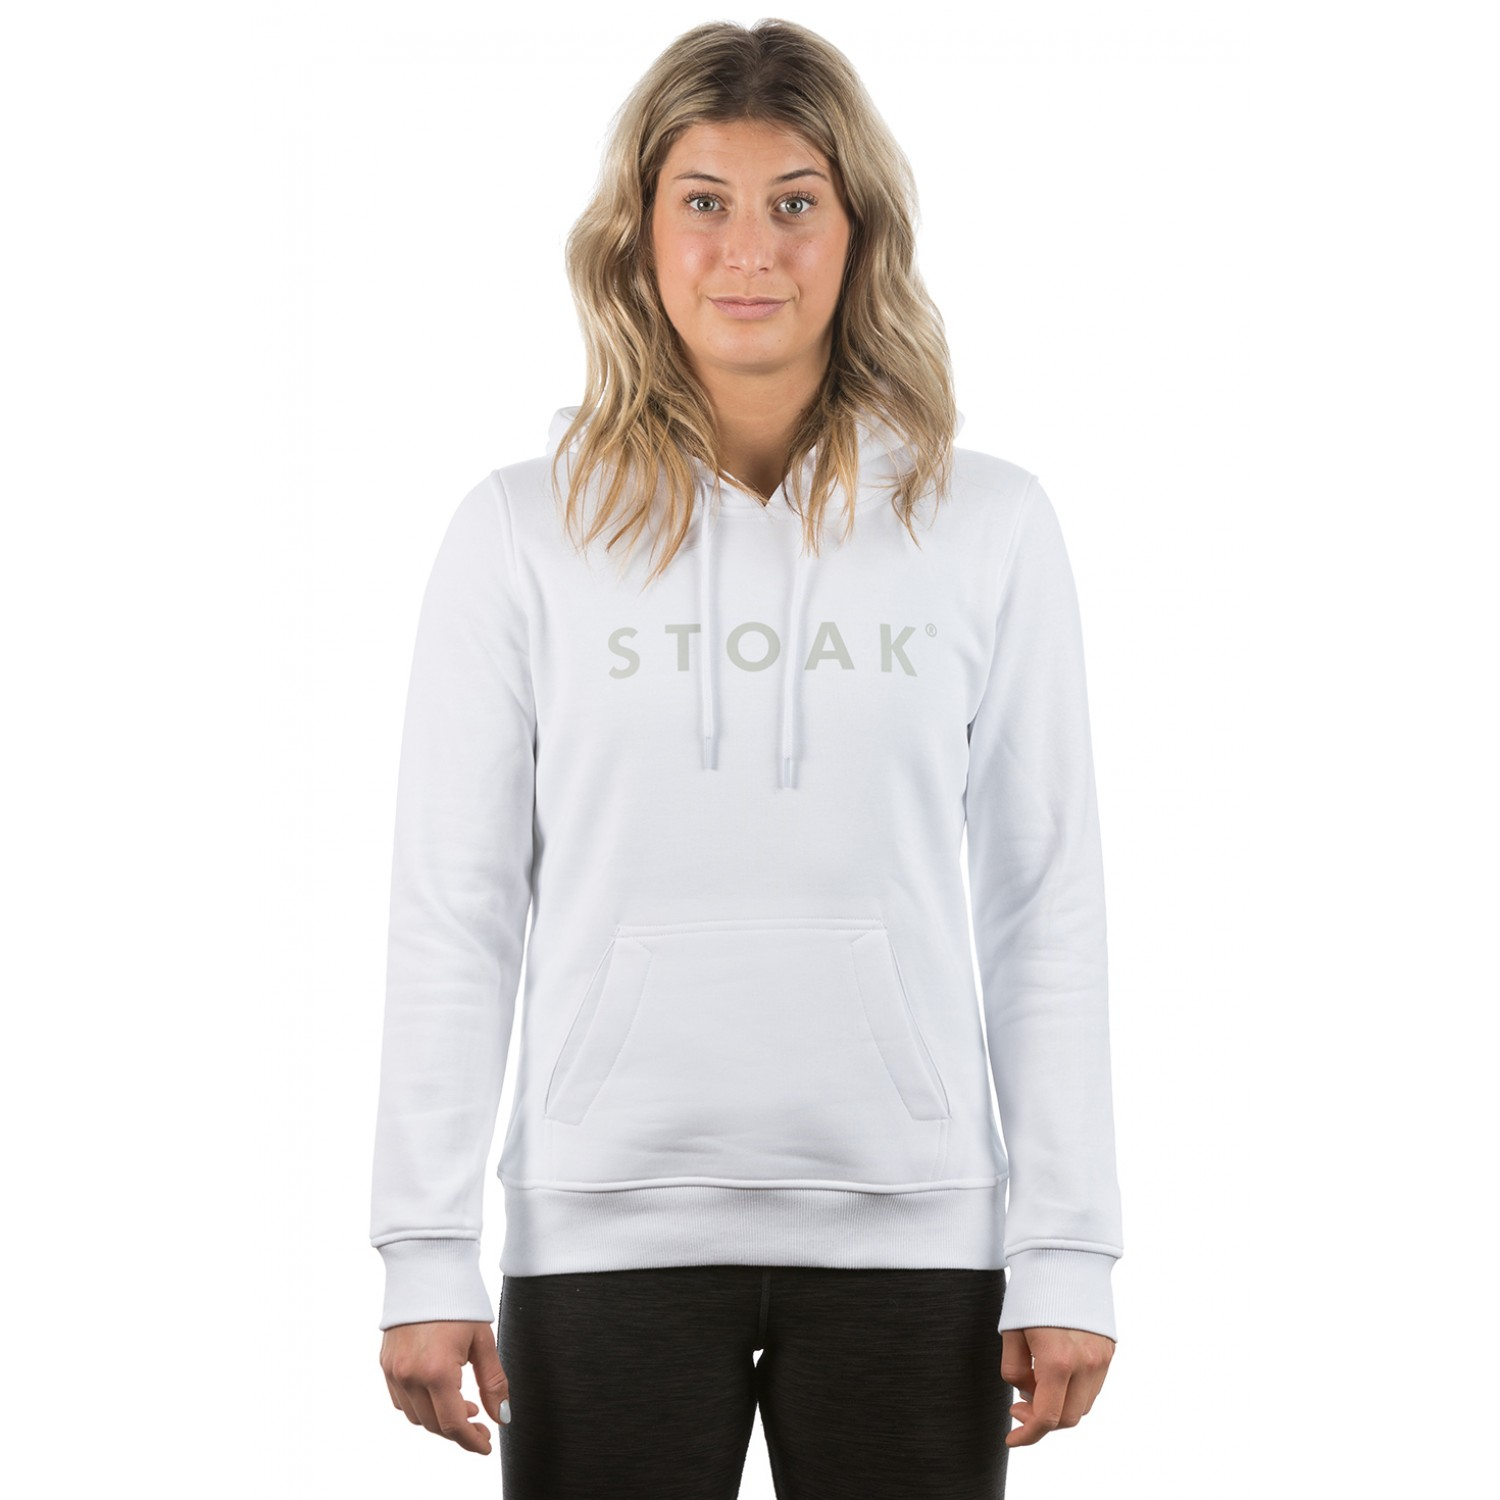 STOAK WHITE DIAMOND Hoodie